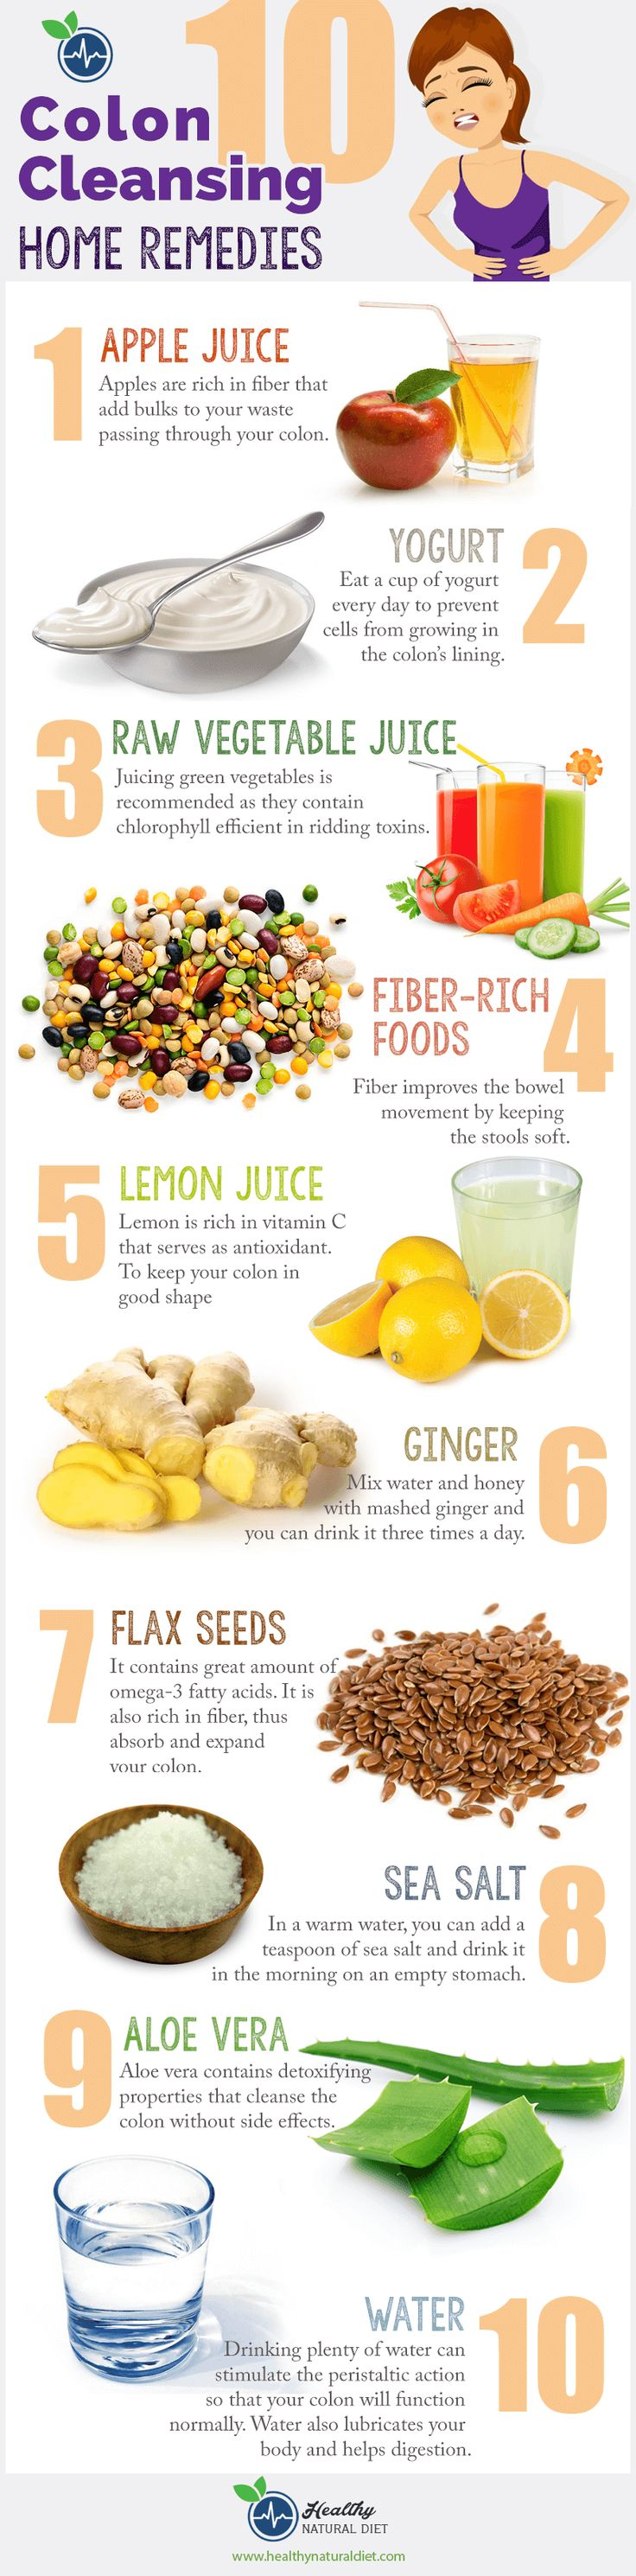 Home Remedies for Colon Cleansing Infographic